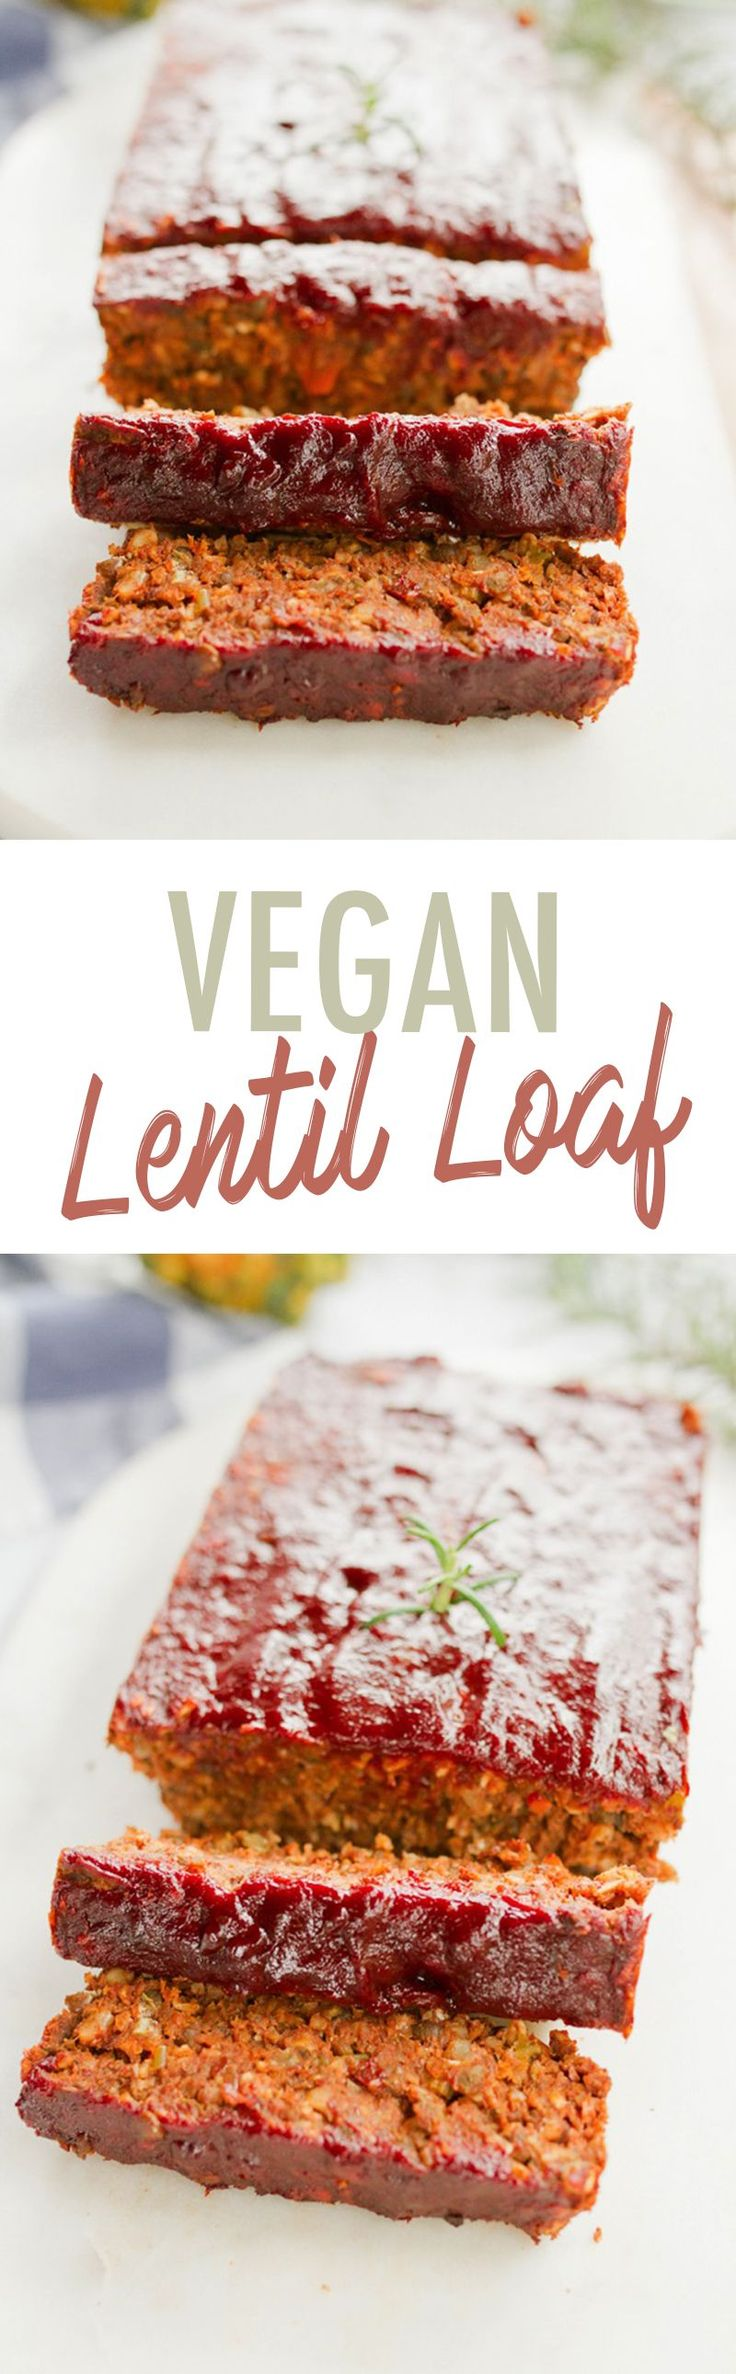 This delicious LENTIL LOAF is the perfect vegetarian main for the holidays!